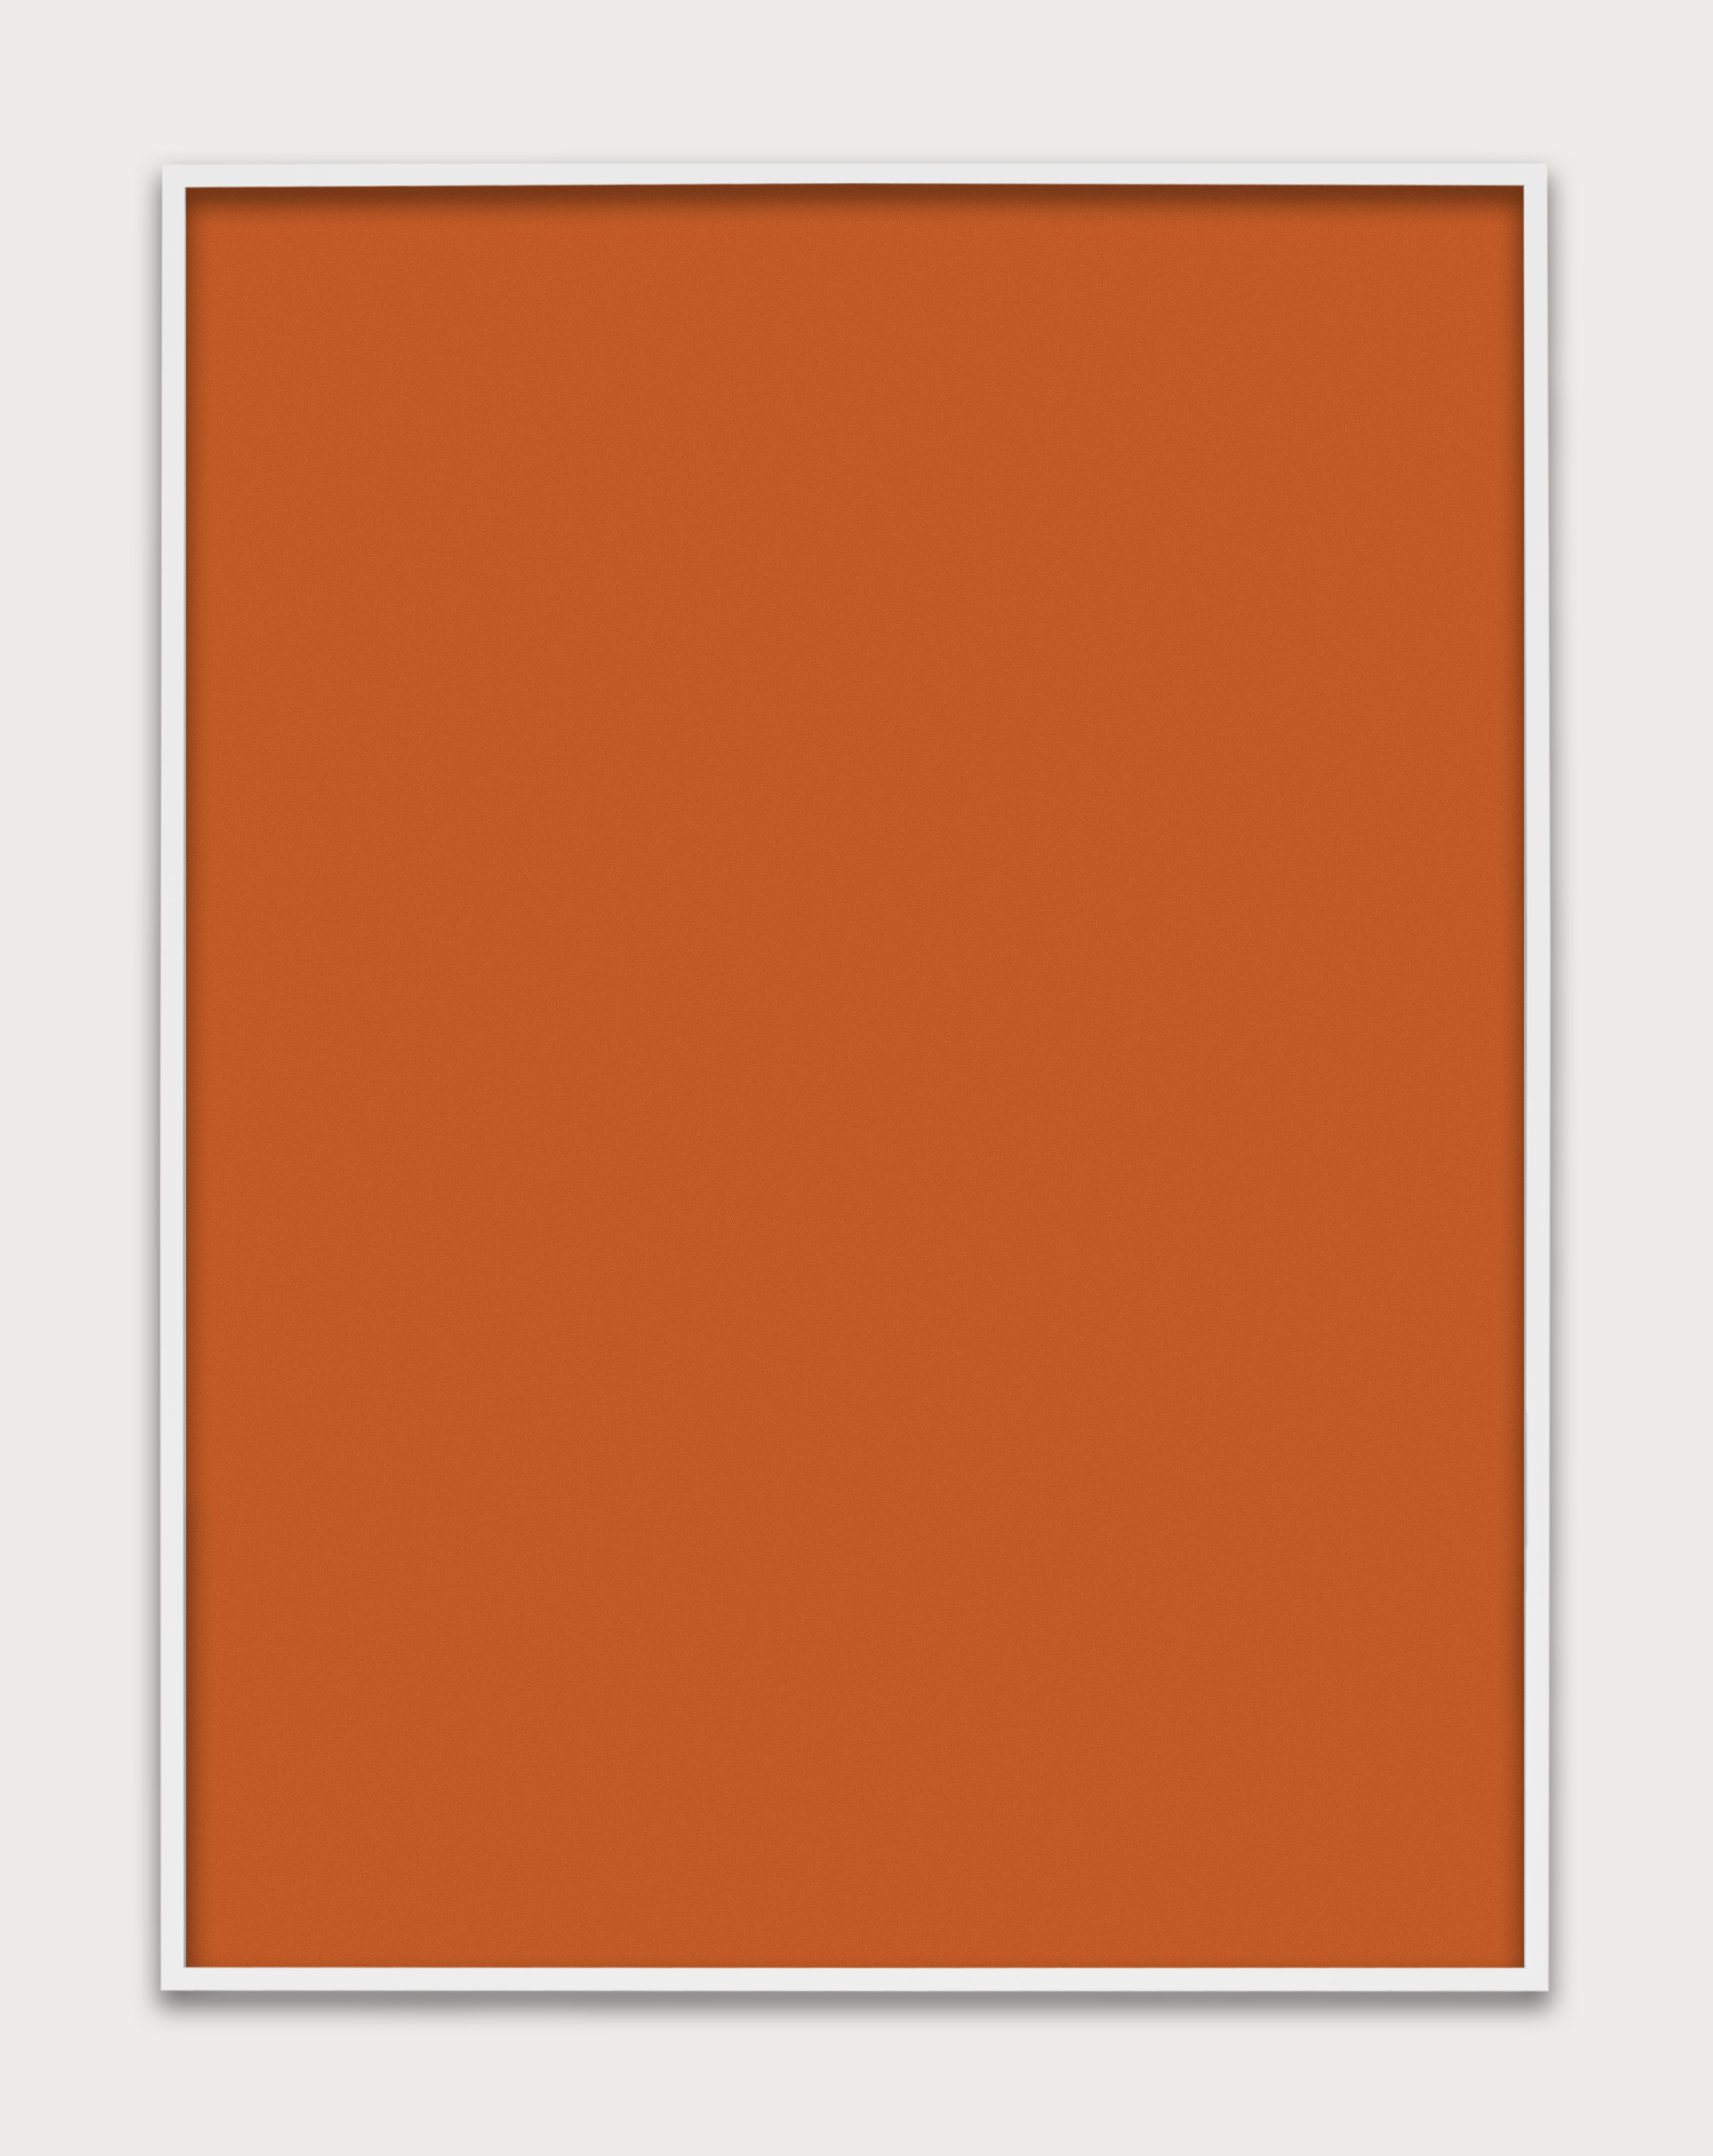 Untitled (Orange Monochrome), 2014 unique chromogenic print 152,4 x 122 cm - 60 x 48 inches